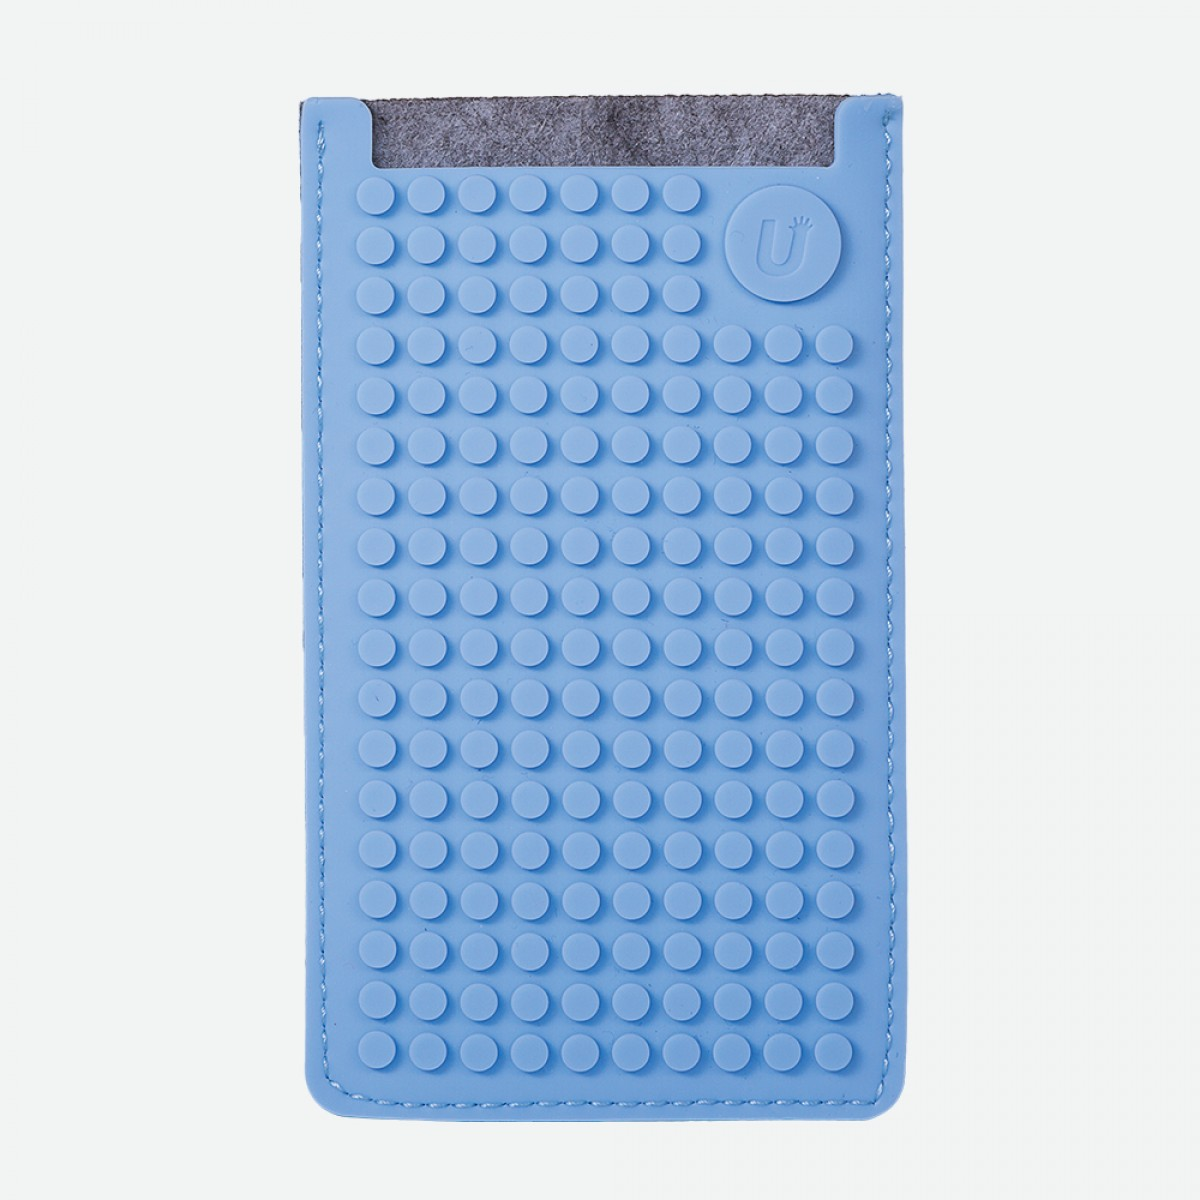 UPixel Pixel Phone Case Small - Blue